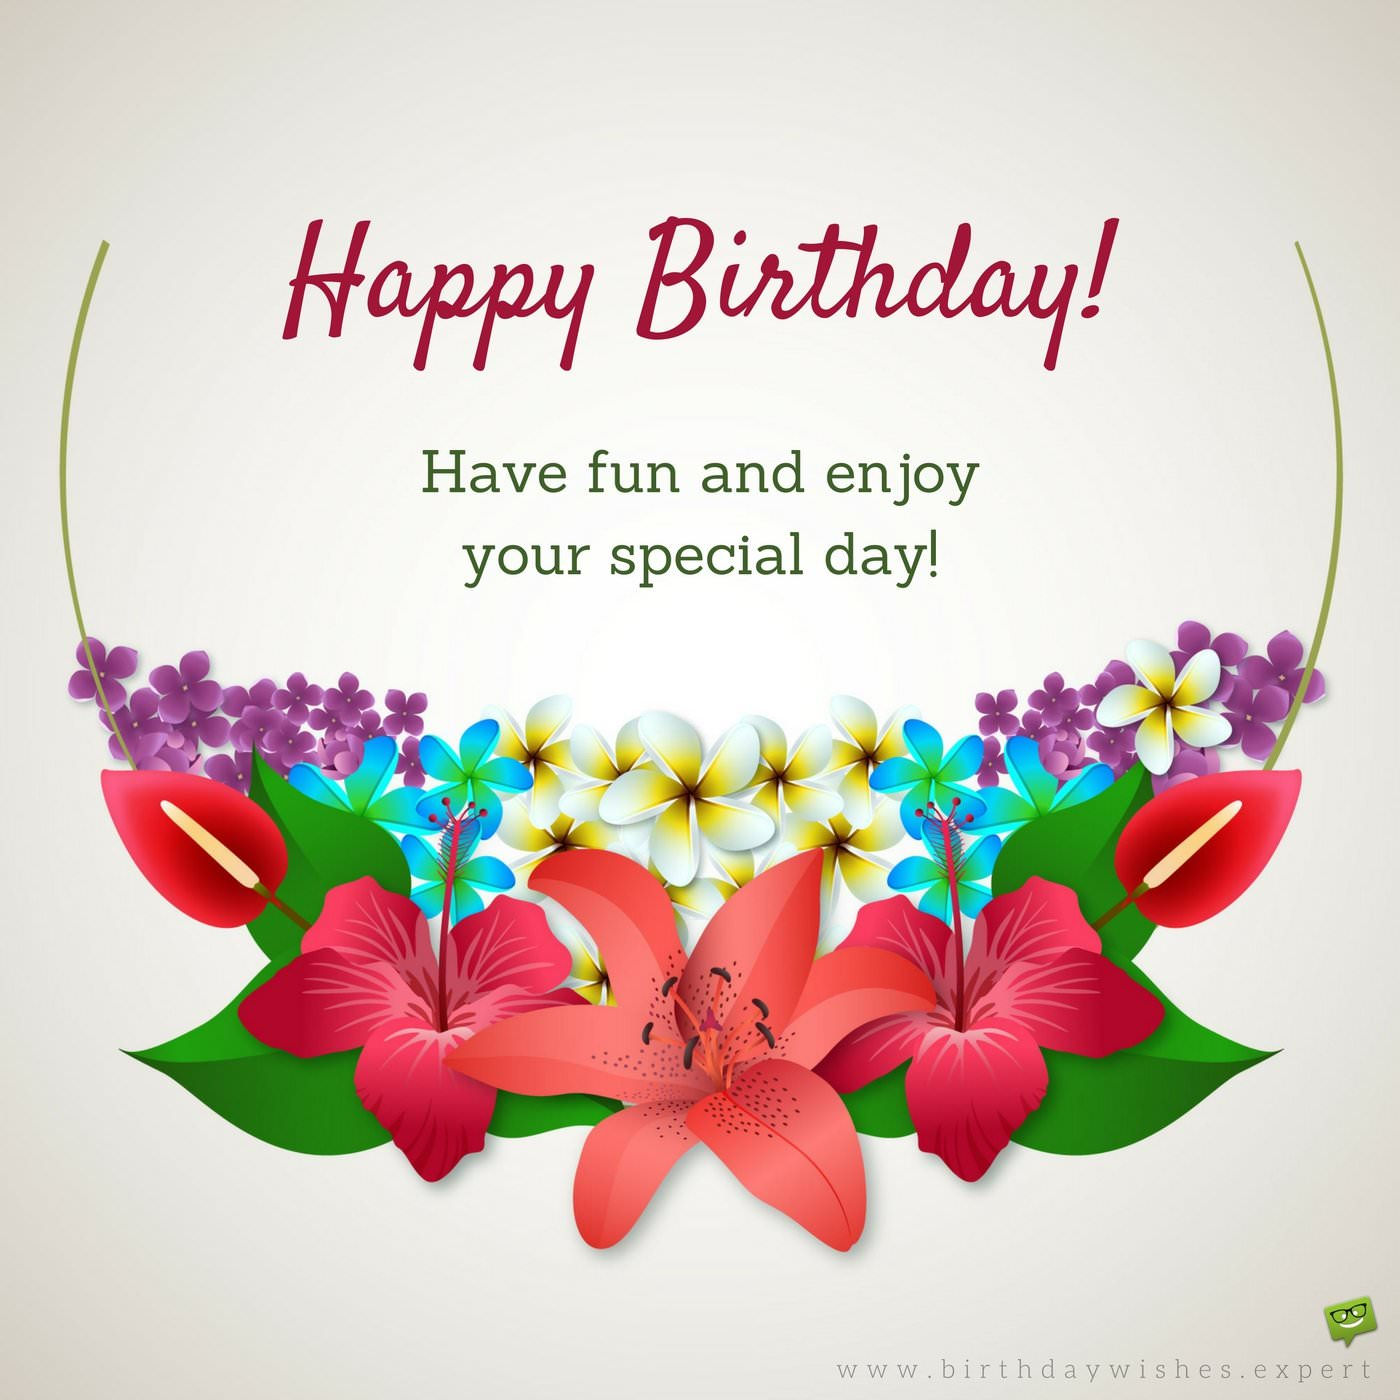 happy birthday day wishes ; Birthday-wish-on-background-with-tropical-summer-flowers